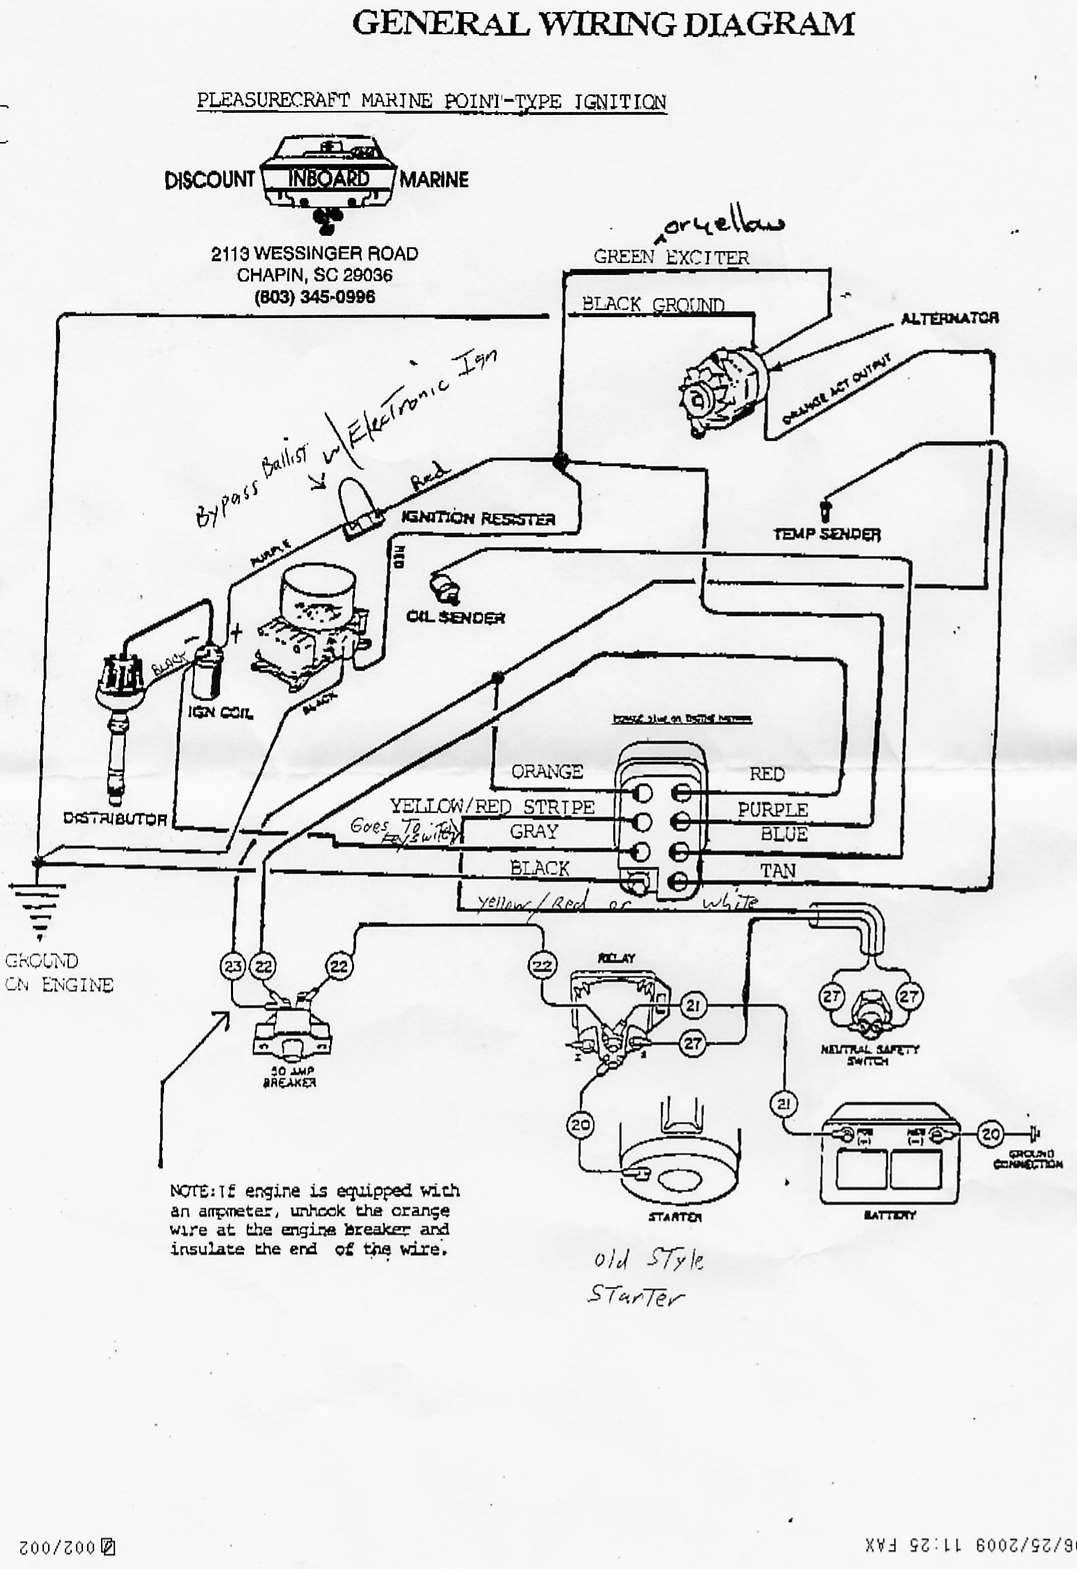 wire diagram for ignition switch together with fan switch wiring